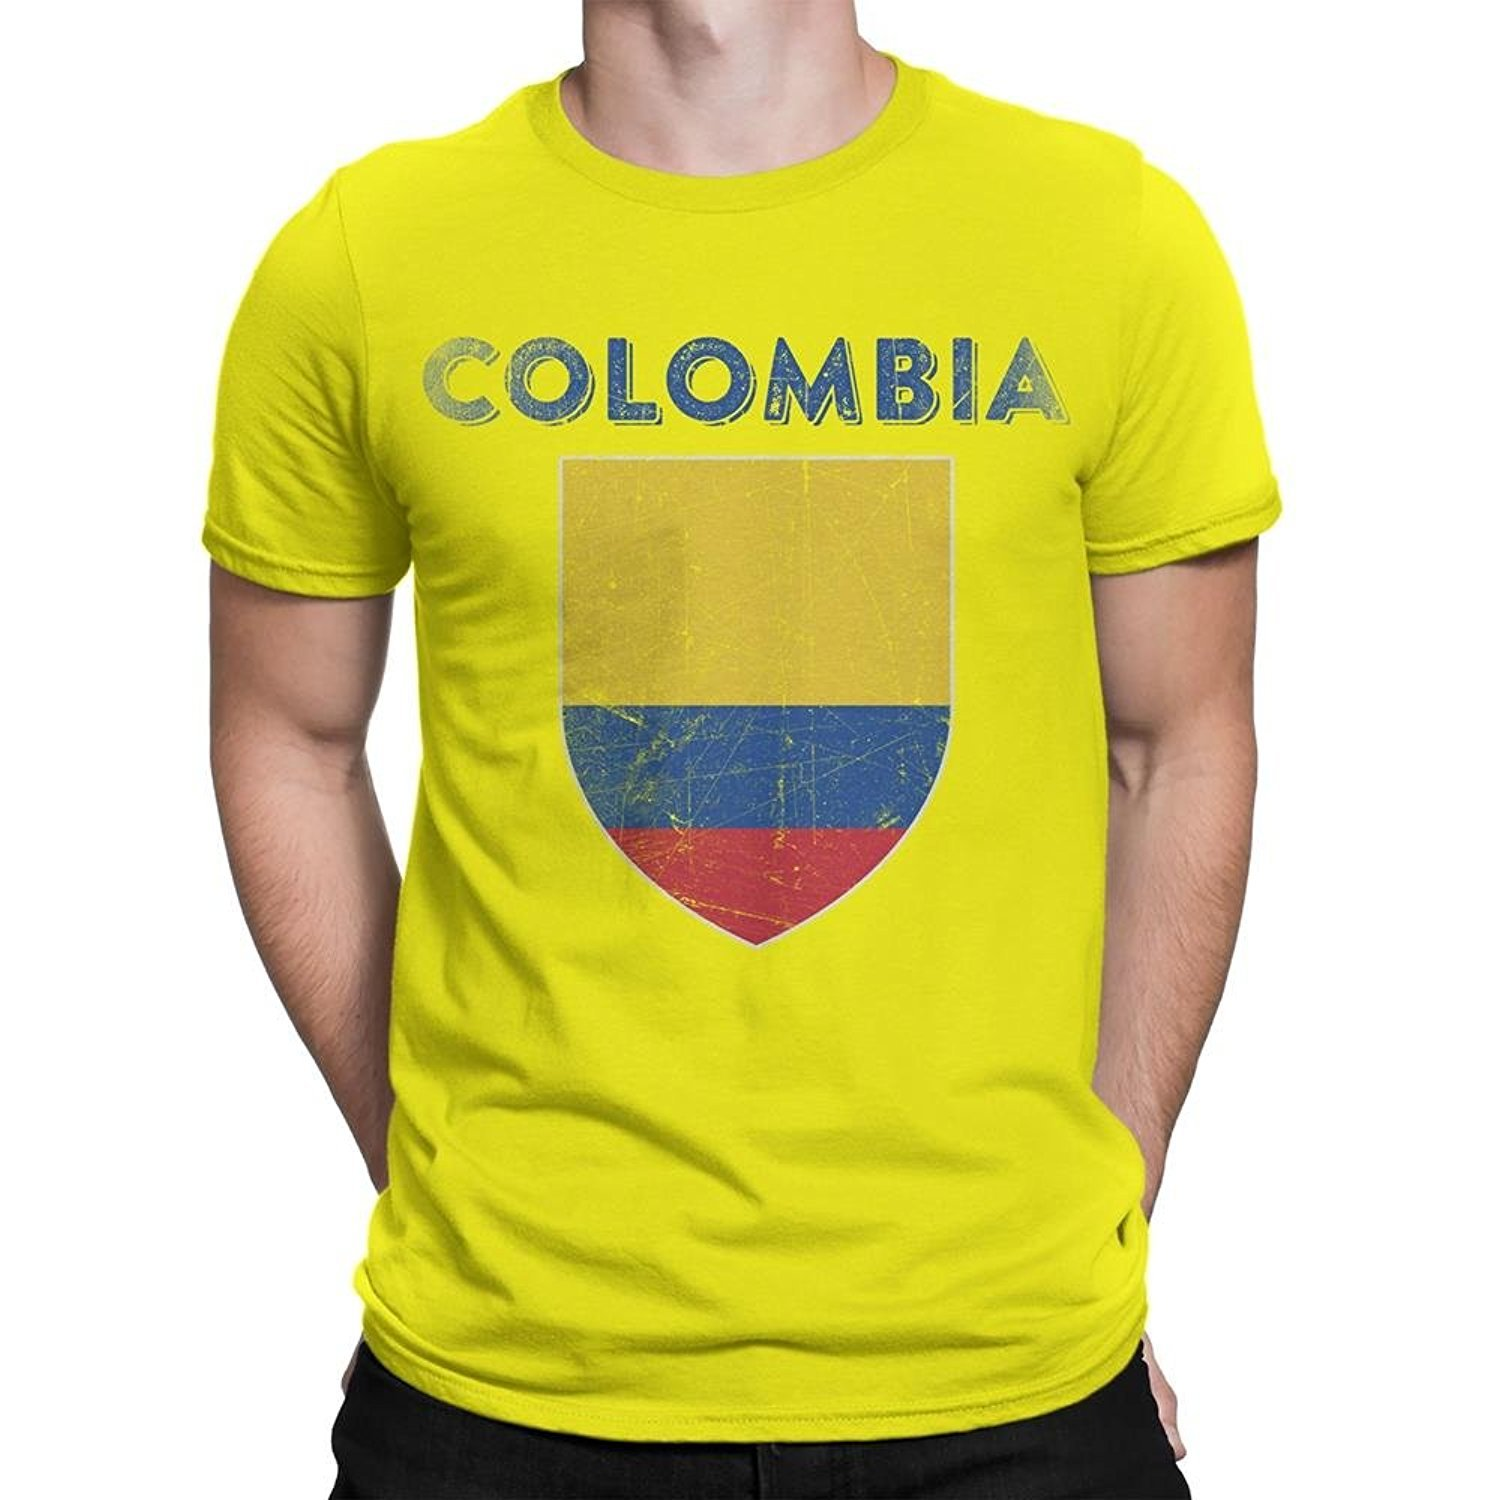 Nyc Factory Colombia Flag Tee T-Shirt Mens Unisex Vintage Retro Ii colombia-fla